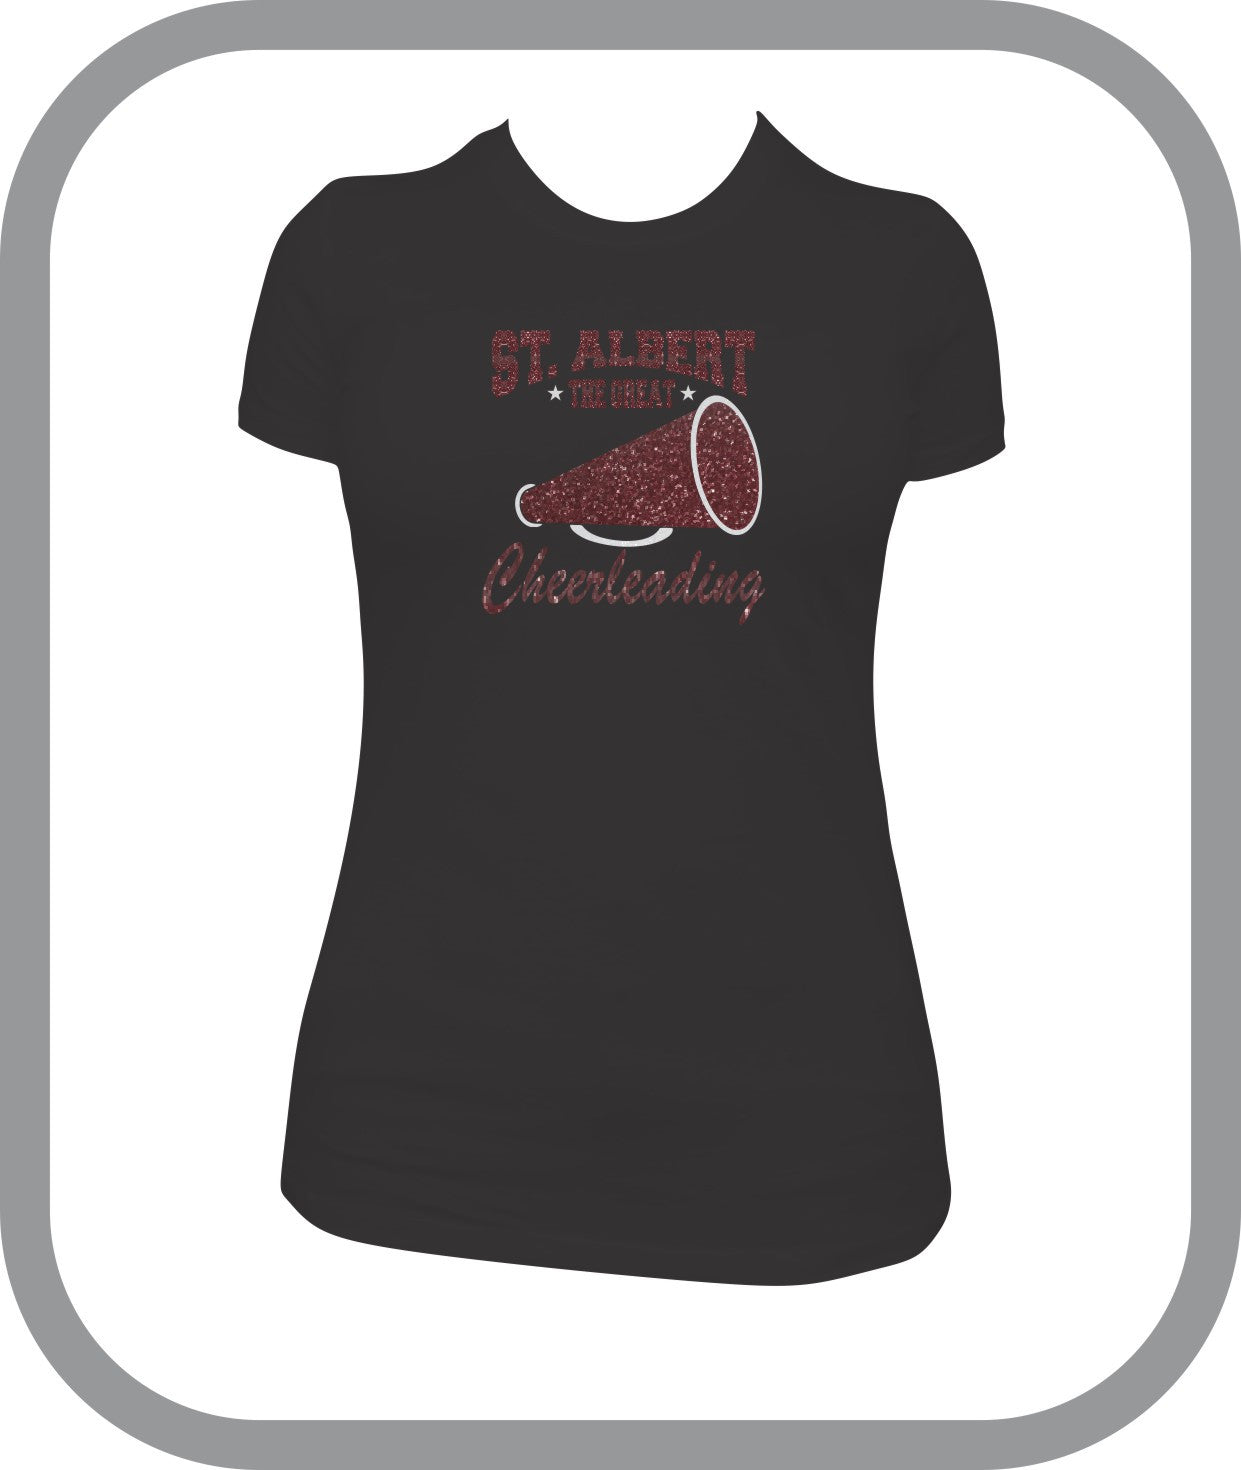 Gators - Ladies T-Shirt